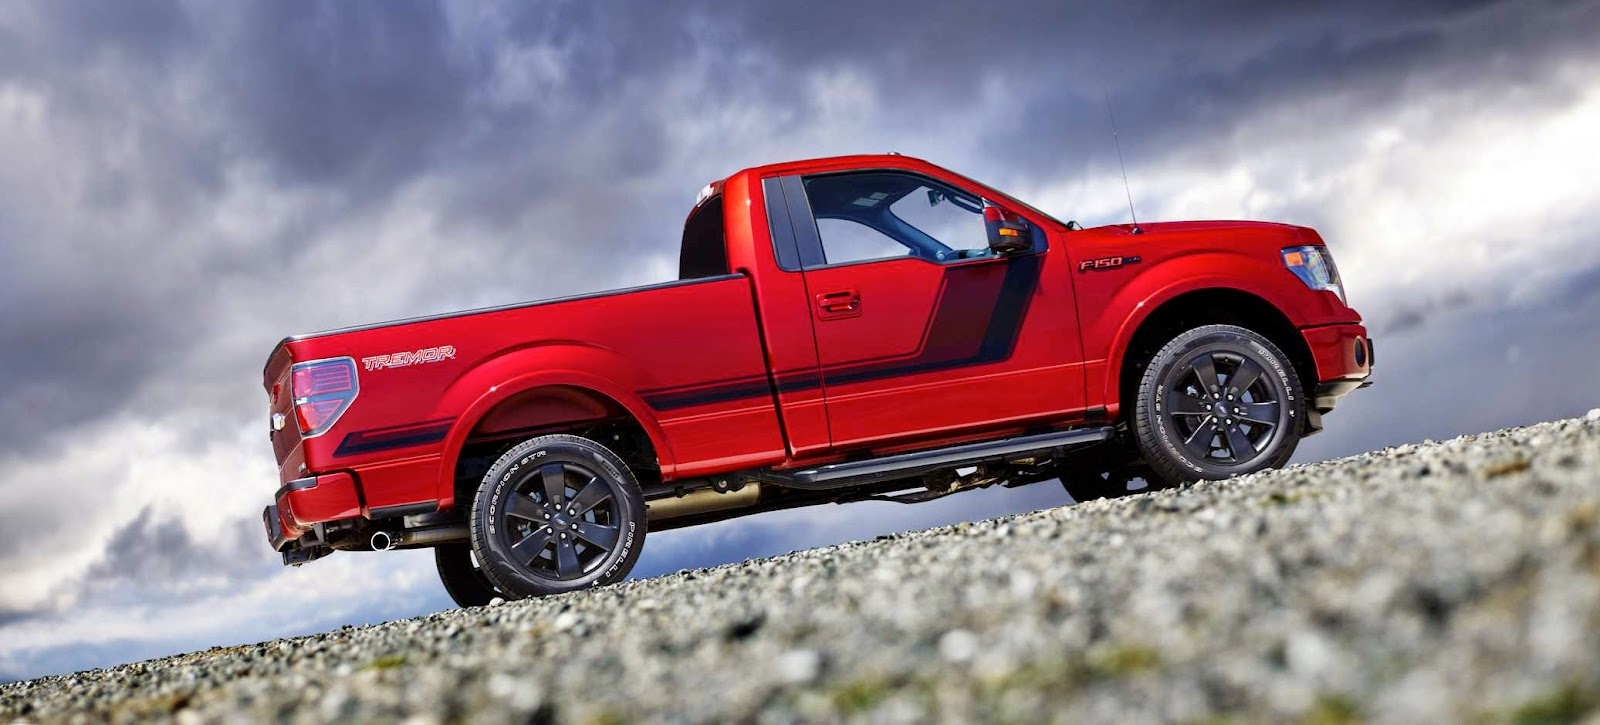 There is one key difference between the f 150 tremor and the f 150 lightnings of old where the lightnings had a big v8 heart and a suspension and chassis